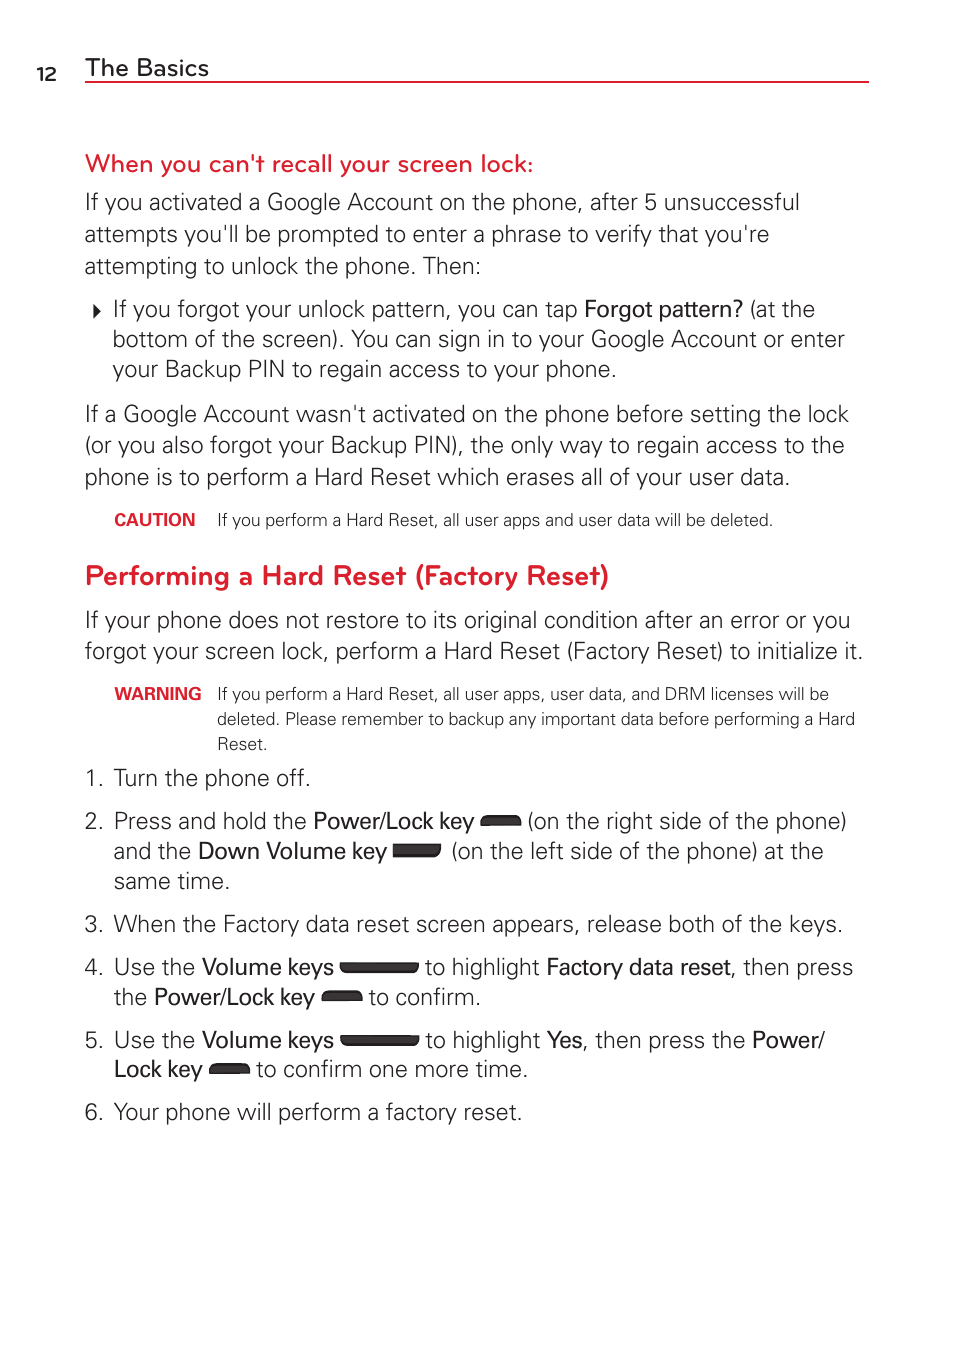 do you need an activation key if you do a factory reset